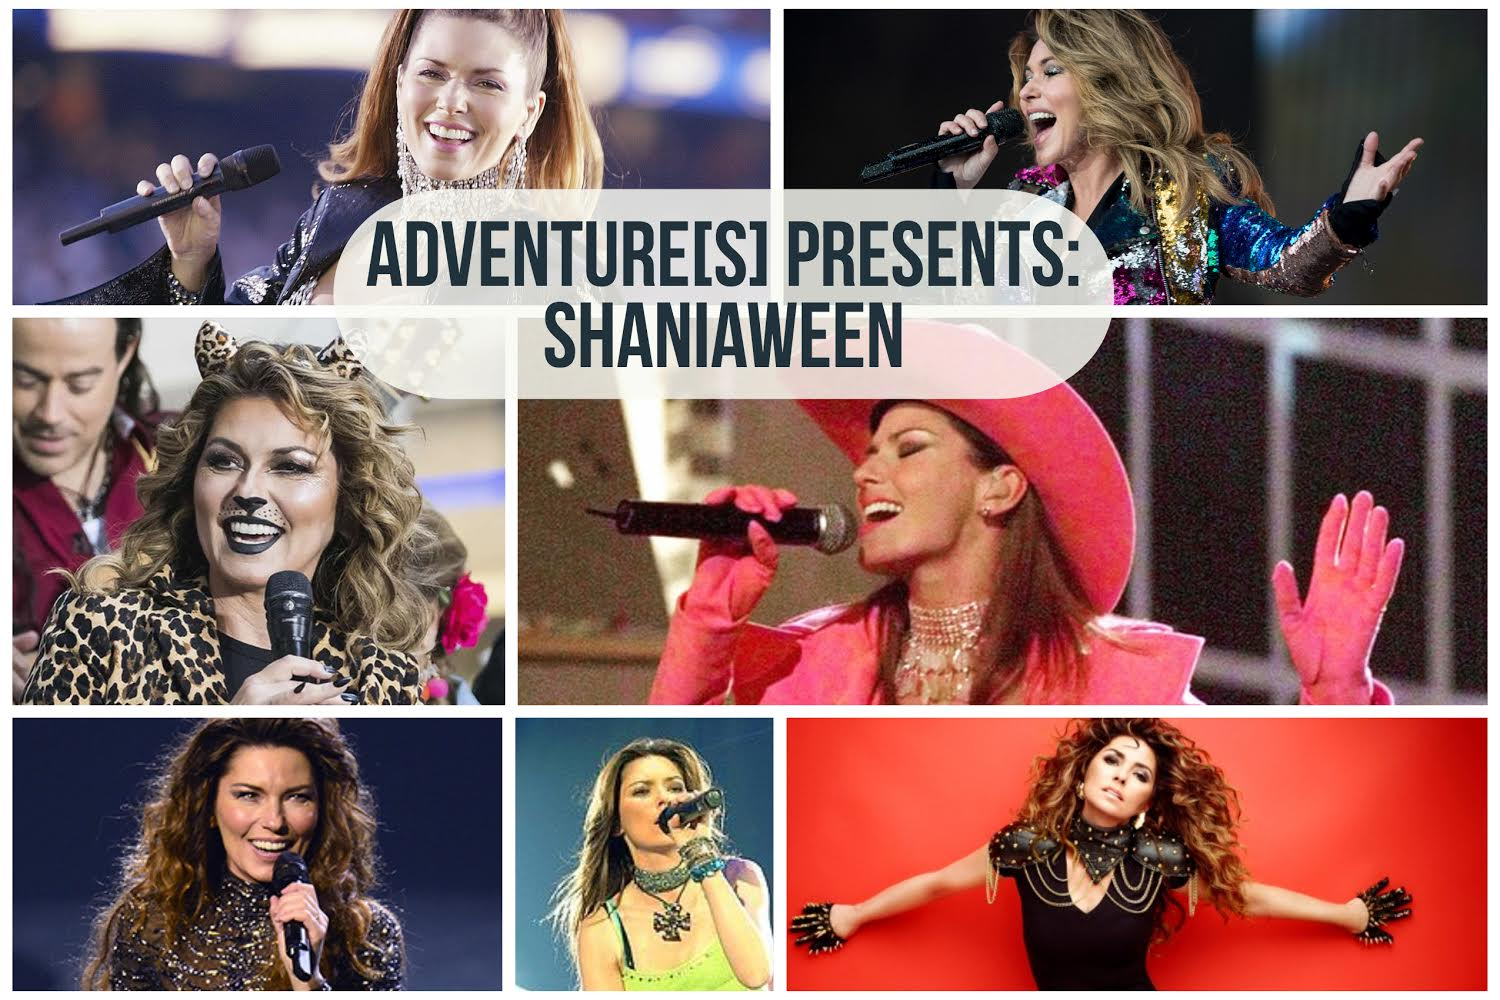 This Party Does Impress You Much: Shaniaween! A pop-country Shania Twain Halloween Party!